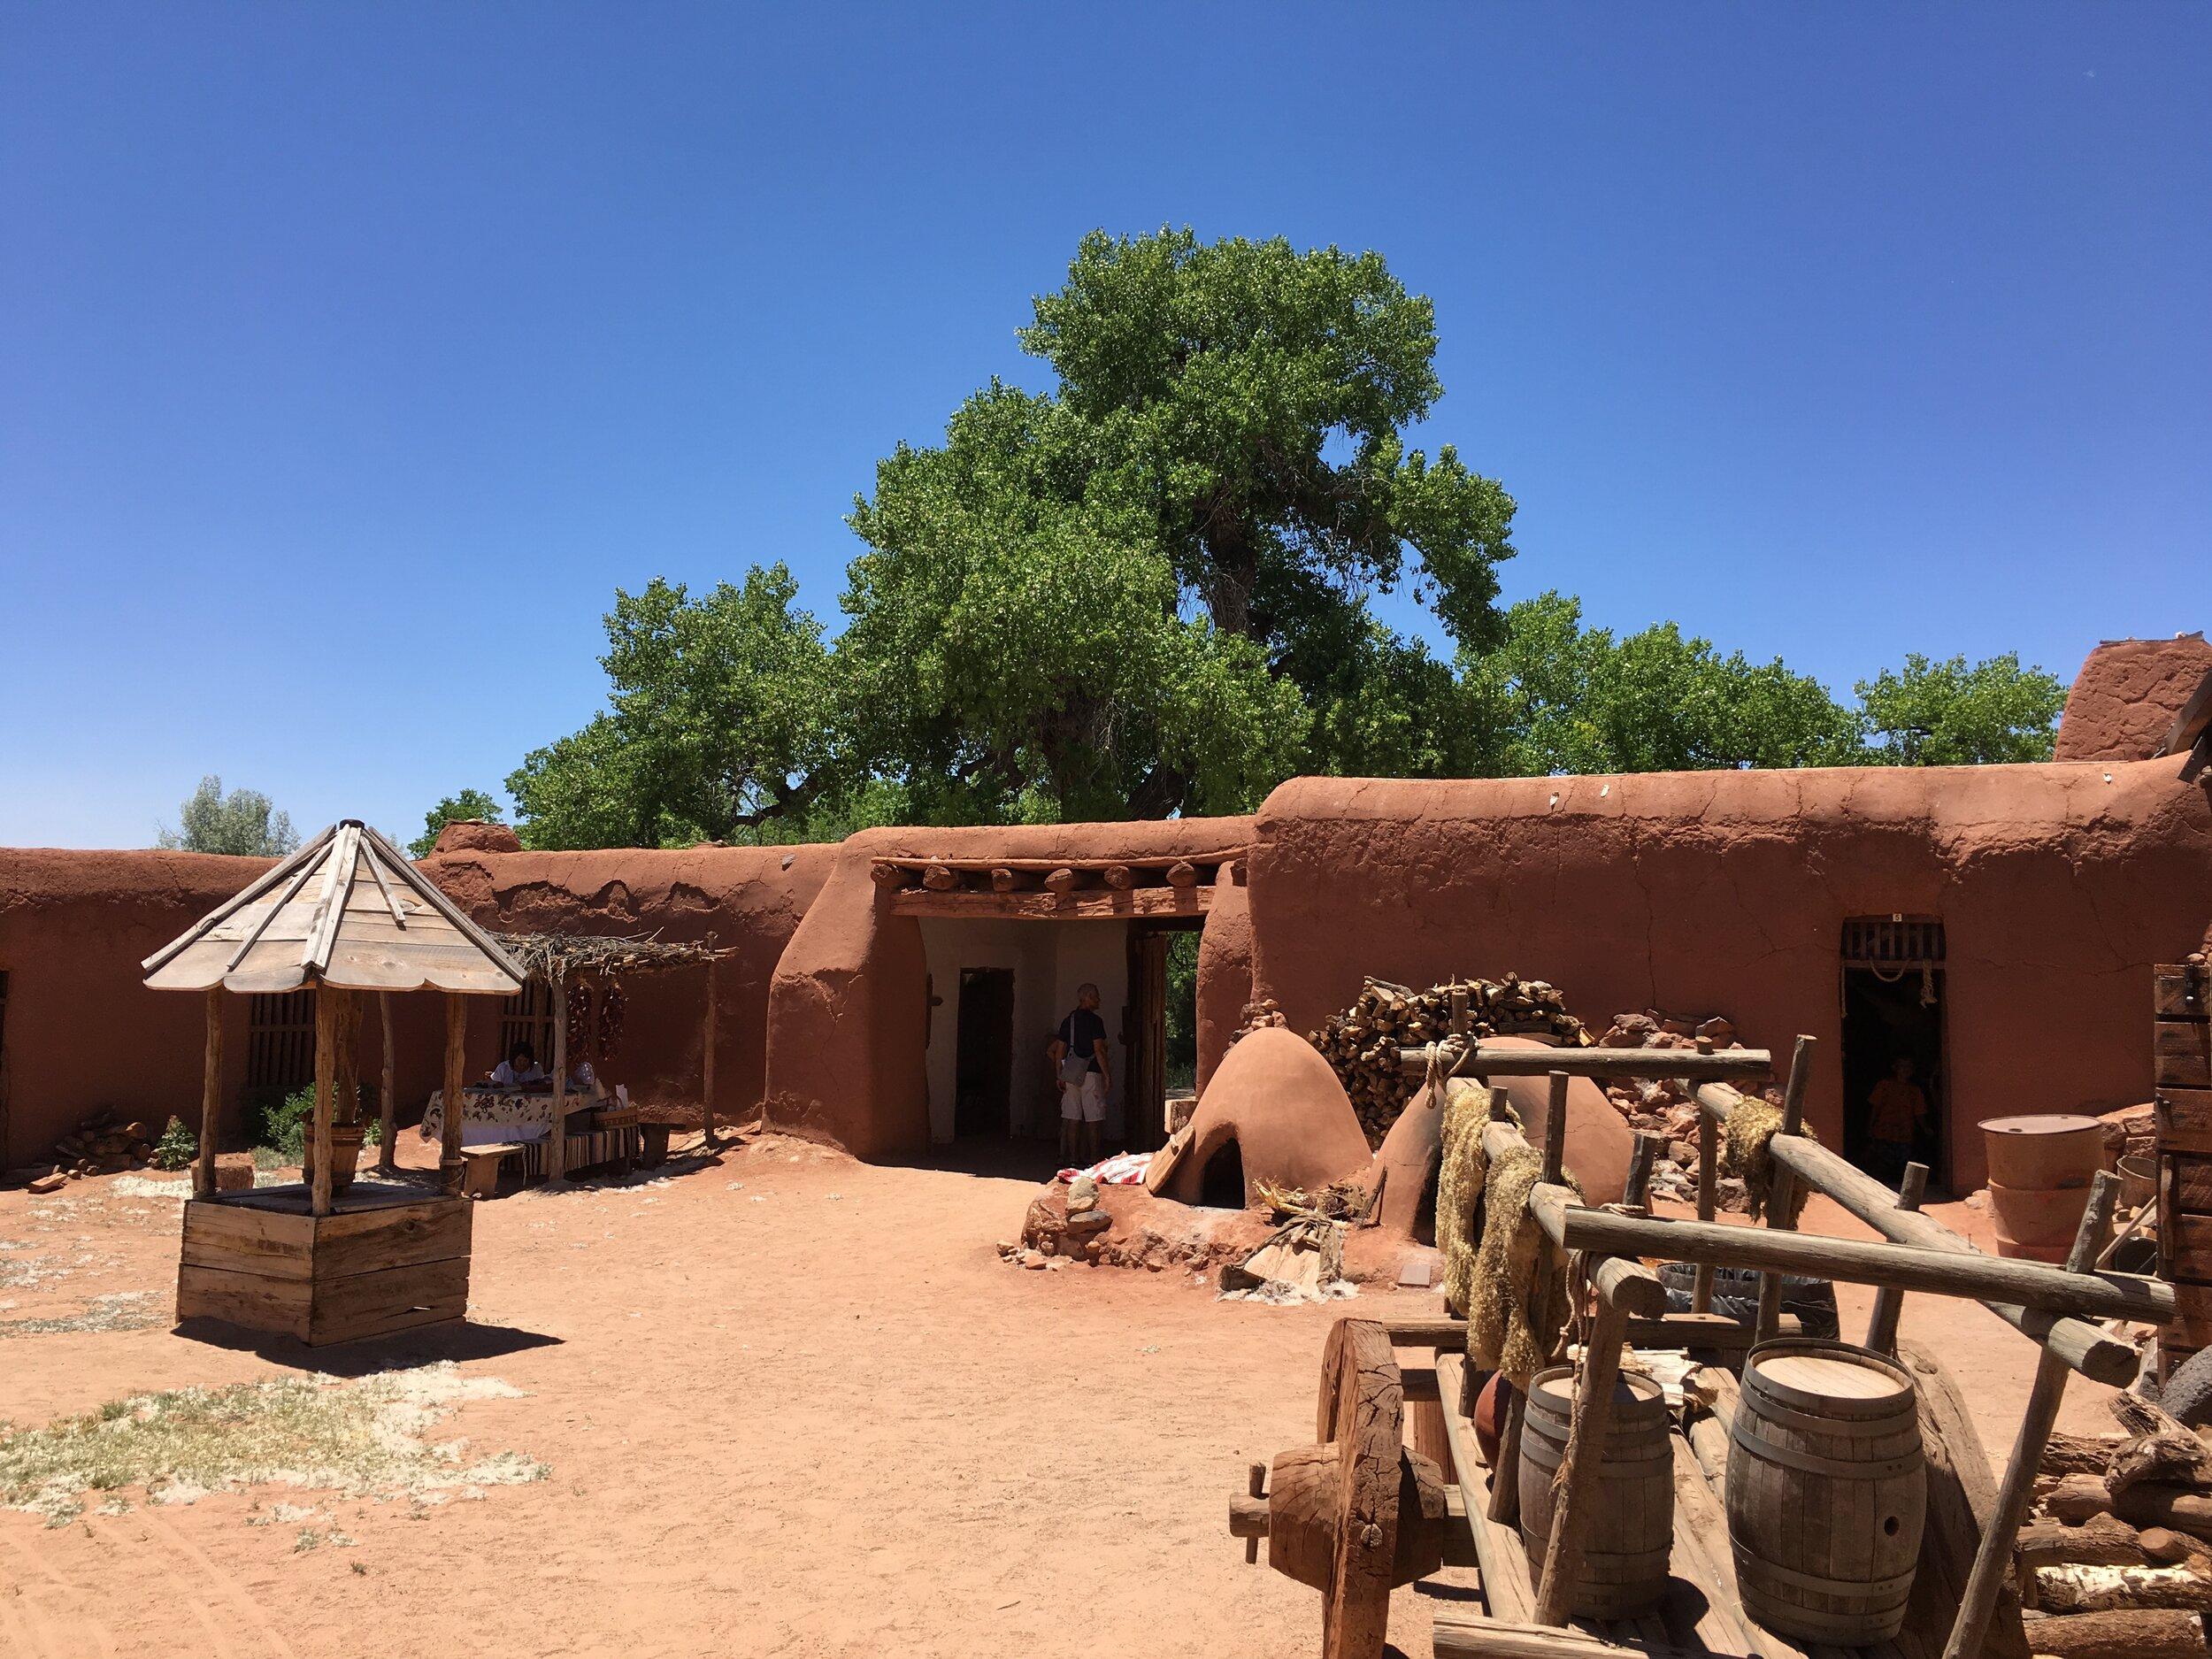 Take a step back in time and experience New Mexico as it was in the 1700s at El Rancho de las Golondrinas